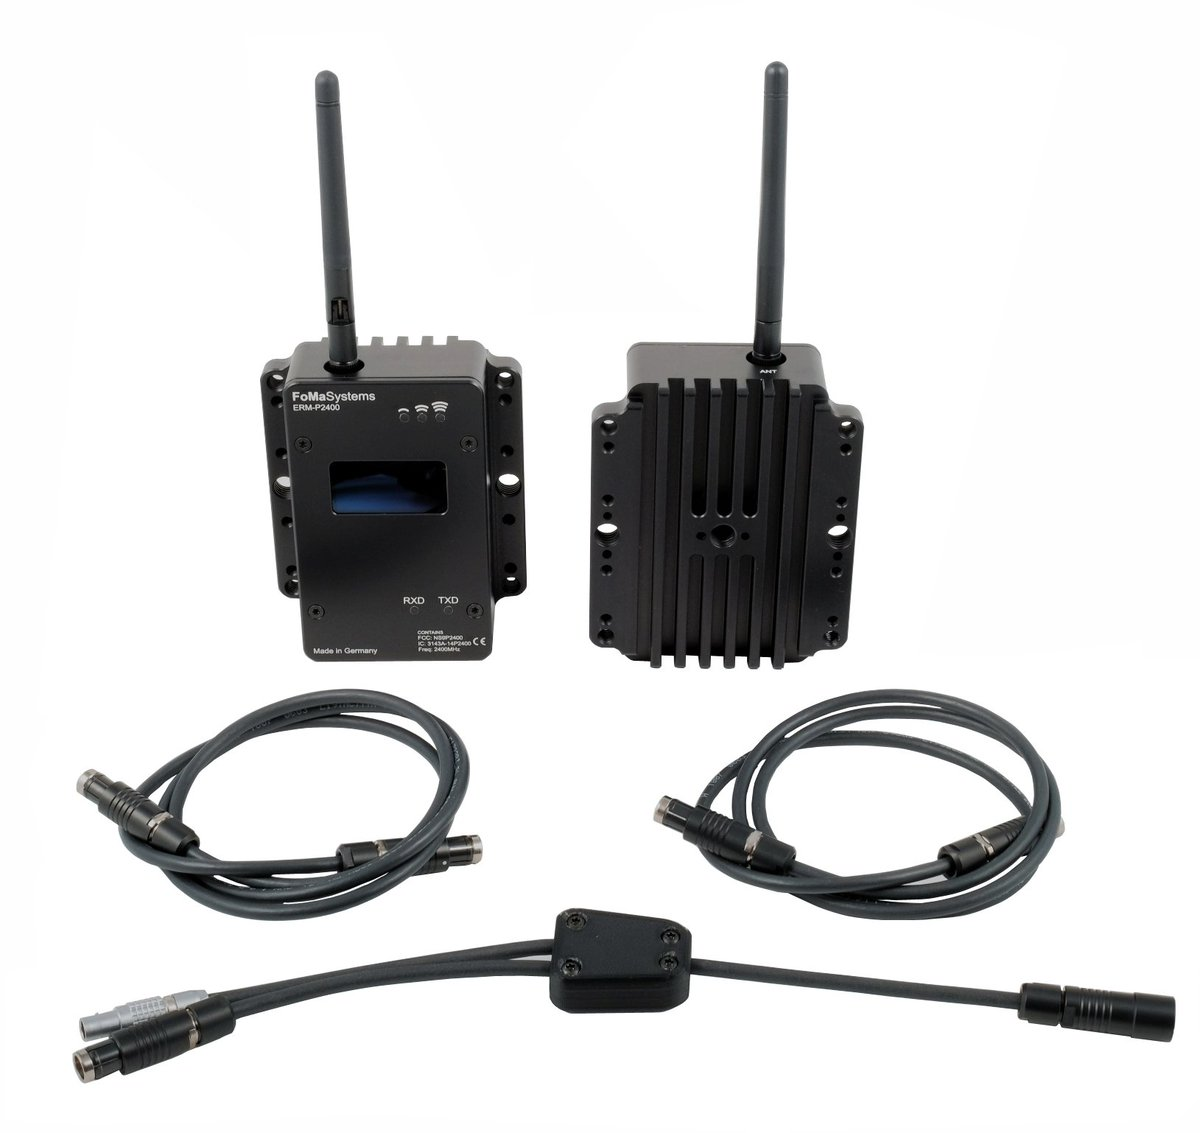 RT @ARRIChannel: #ARRI is pleased to announce a new line of External Radio Modules (ERM) for remote operation of our SRH-3. Available in 2…